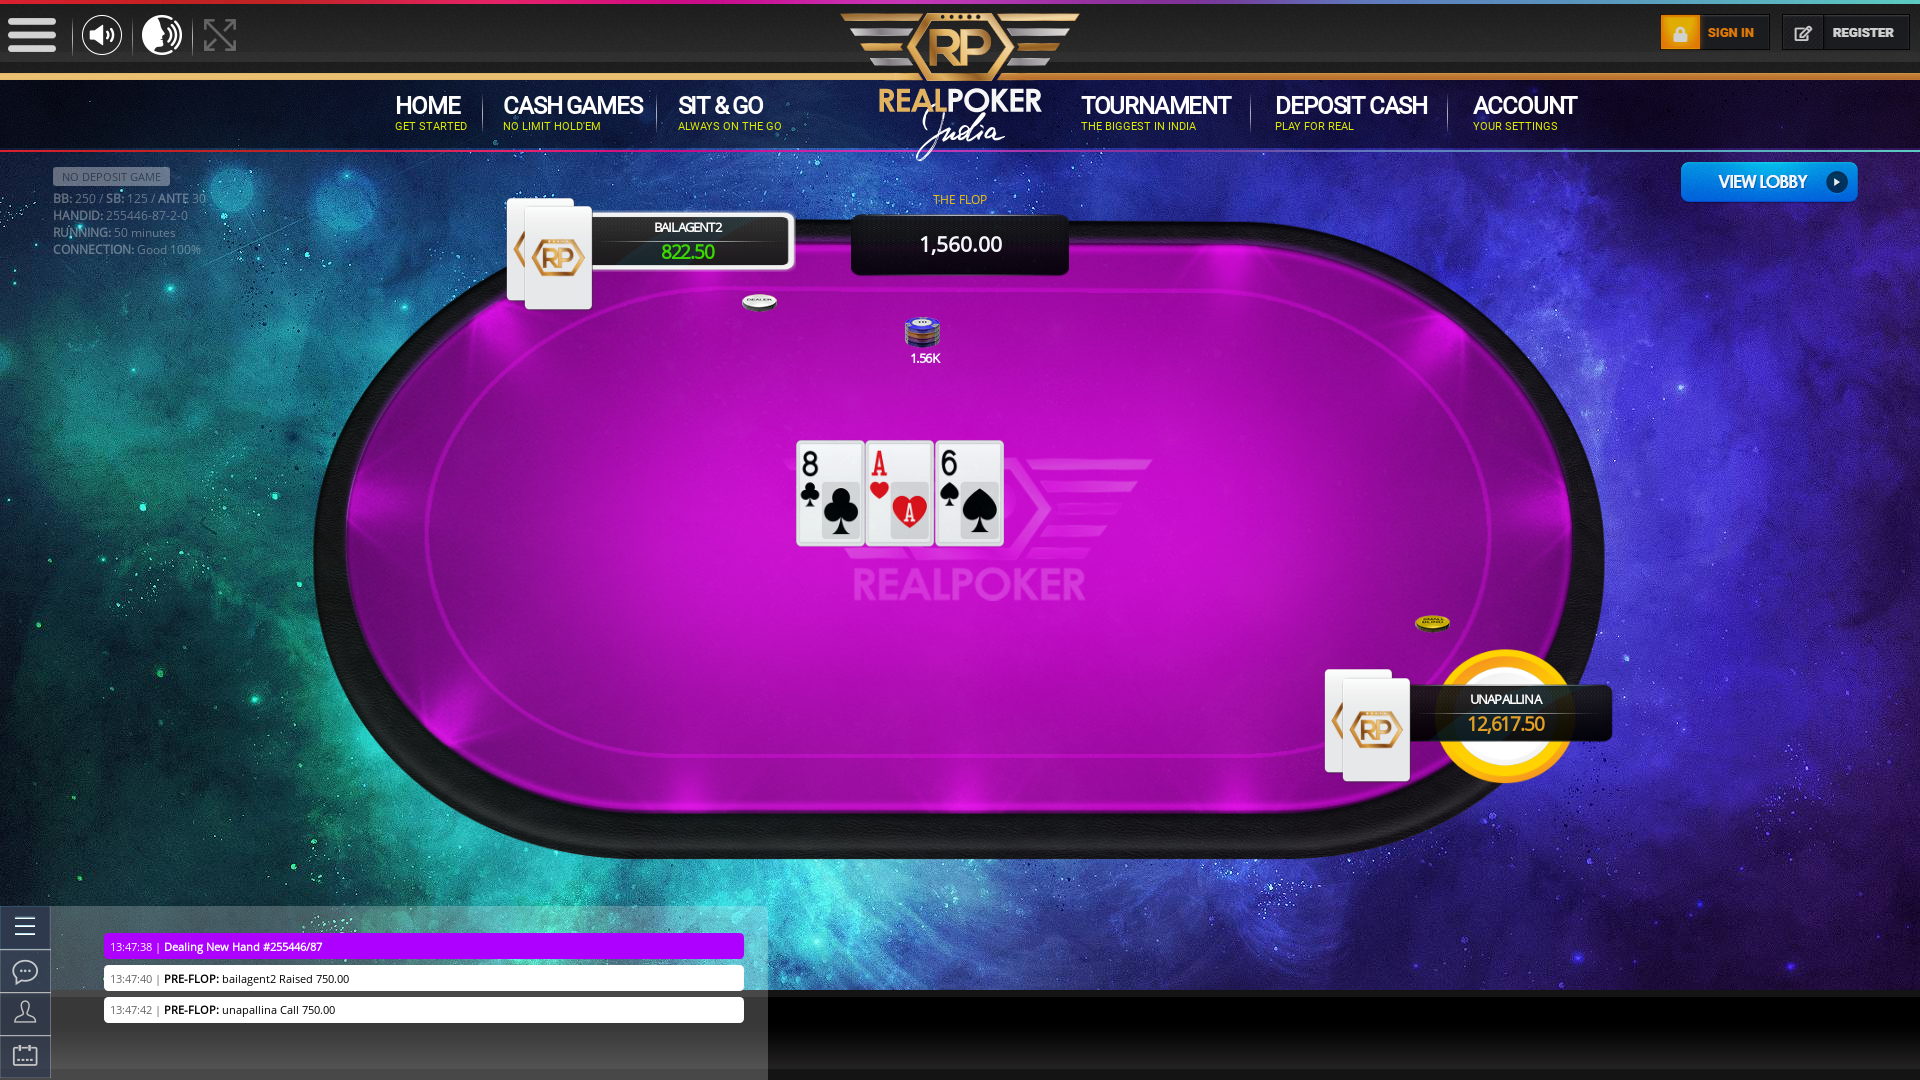 Indian online poker on a 10 player table in the 50th minute match up